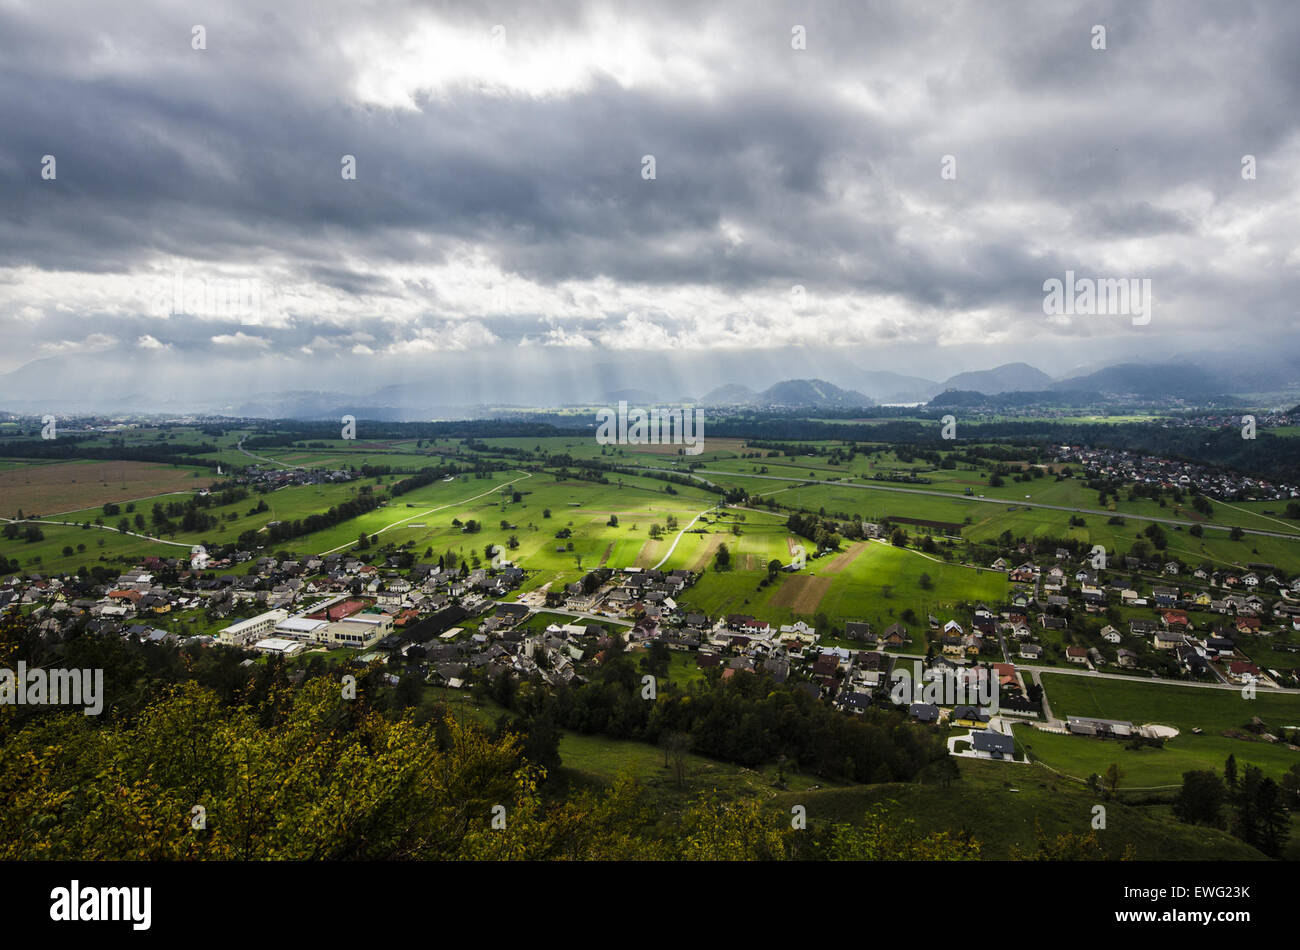 Wide-Angle View of Valley Community Clouds Wide-Angle grass green hills homes houses landscape outdoor suburbs - Stock Image